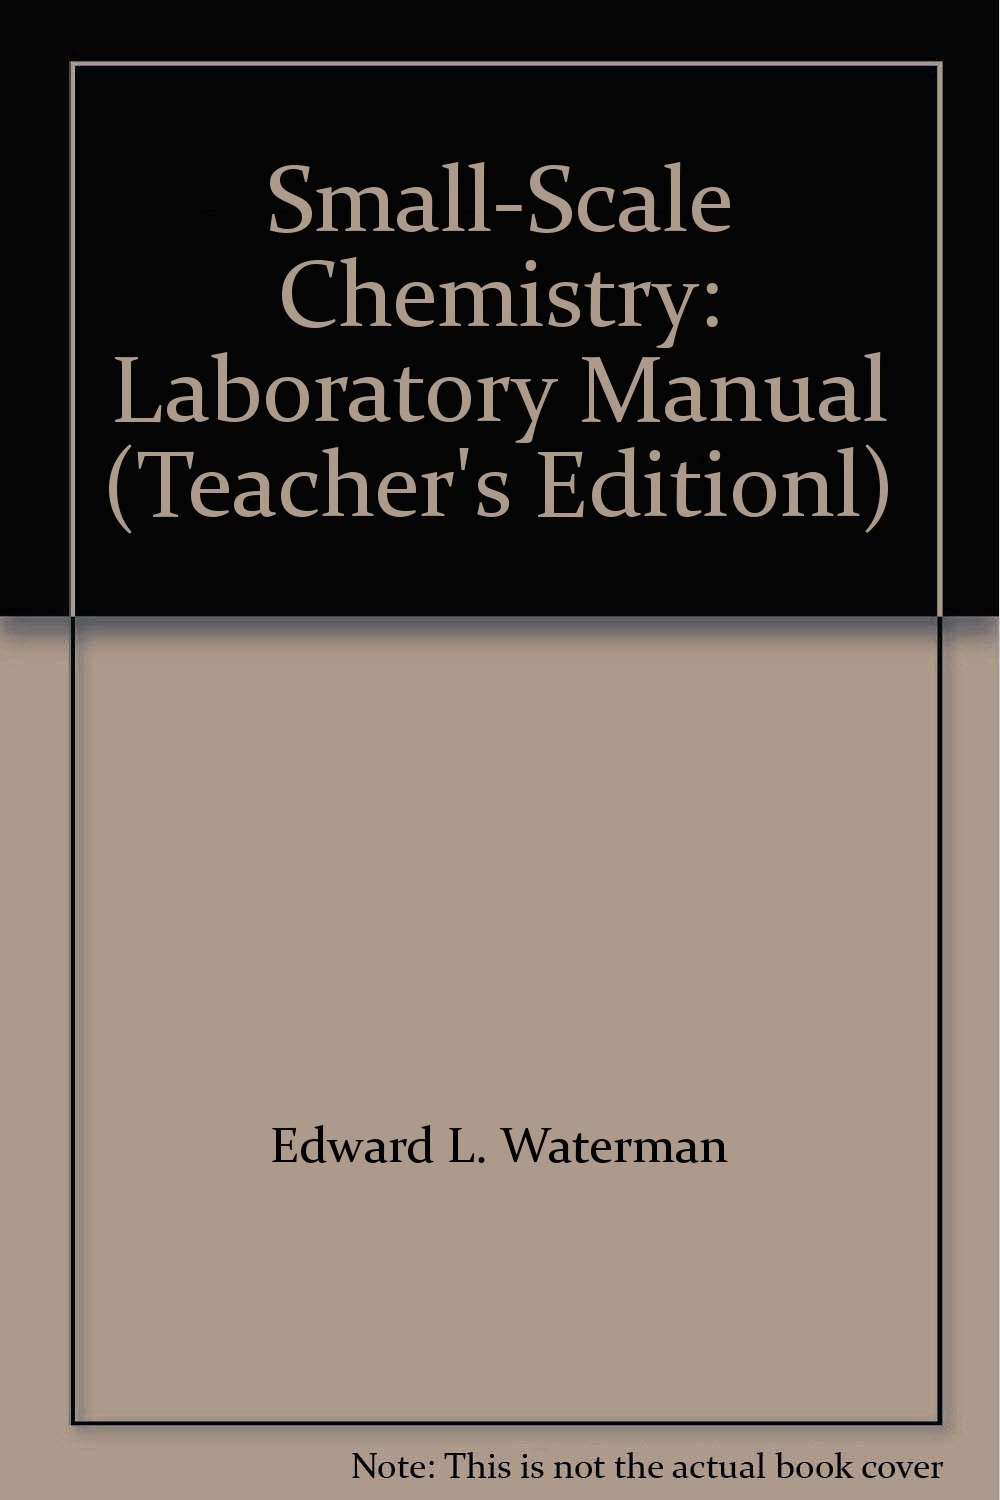 Small-Scale Chemistry: Laboratory Manual (Teacher's Editionl): Edward L.  Waterman, Stephen Thompson: 9780201250077: Amazon.com: Books